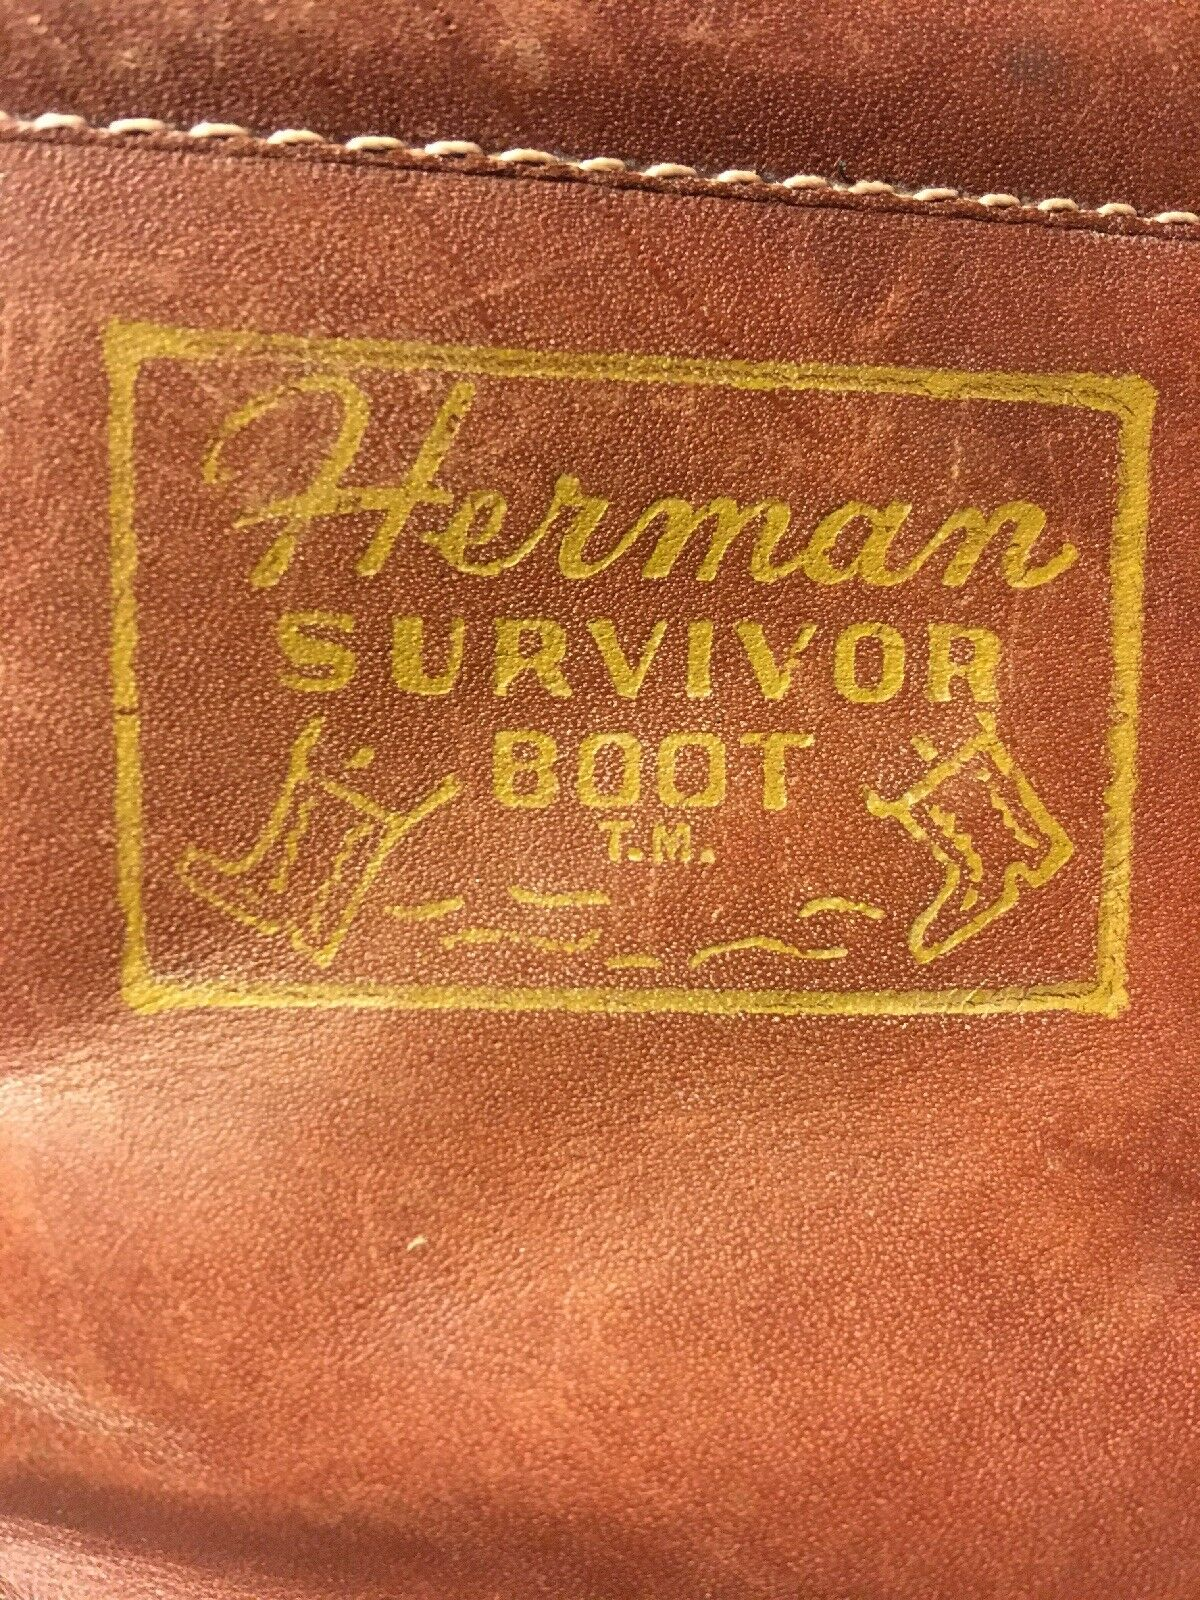 Vintage 1980's HERMAN SURVIVOR Insulated Leather Work Boot Size 8.5